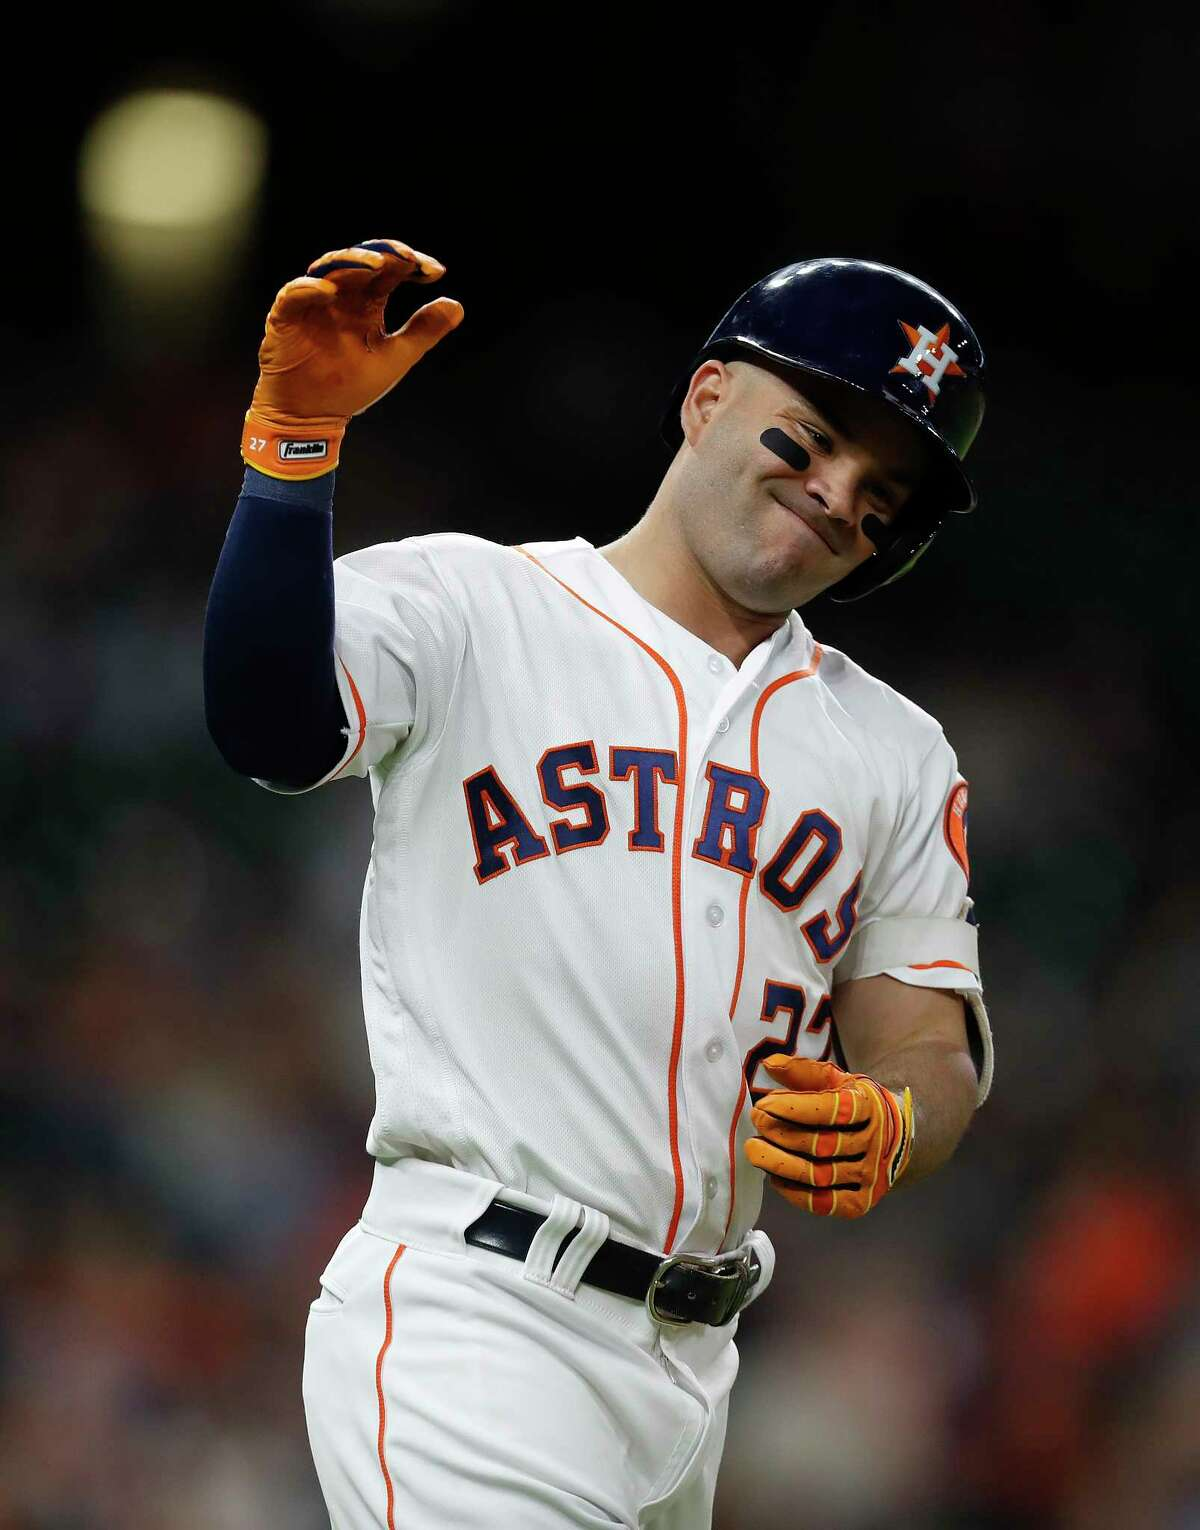 Houston Astros second baseman Jose Altuve (27) reacts after flying out during the fifth inning of an MLB baseball game at Minute Maid Park, Monday, May 22, 2017.